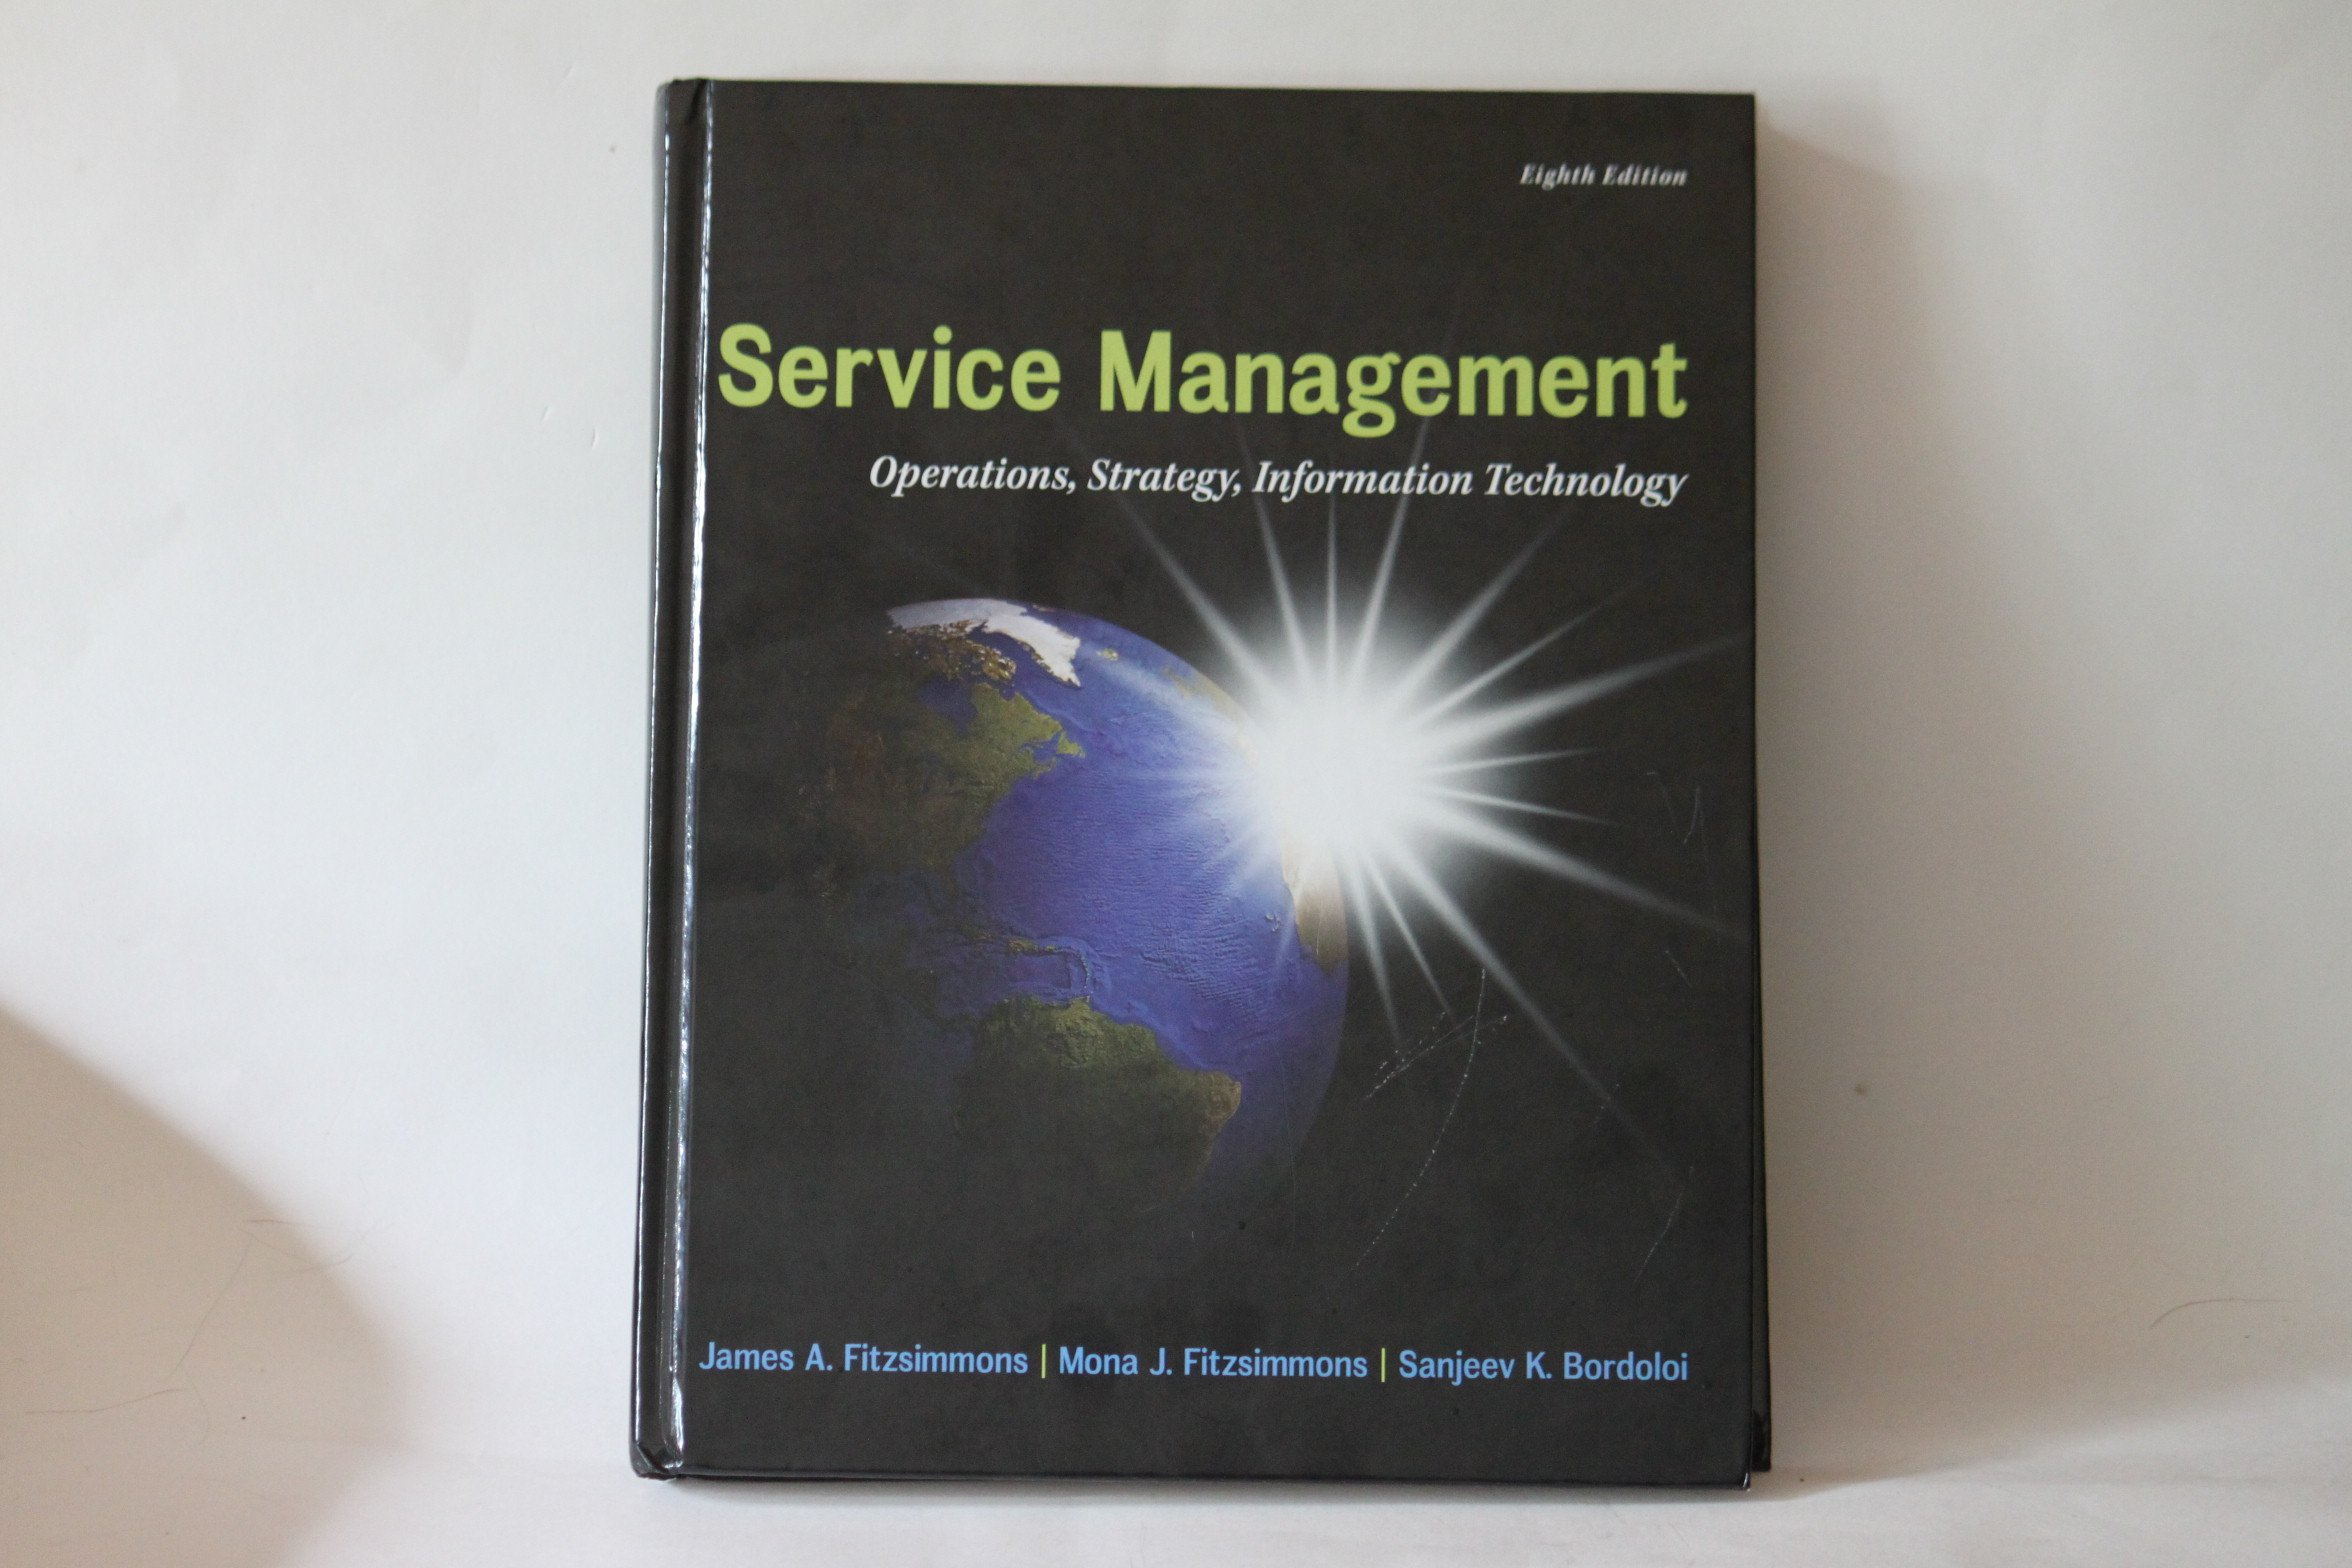 Service management operations strategy information technology service management operations strategy information technology 9780078024078 amazon books fandeluxe Choice Image